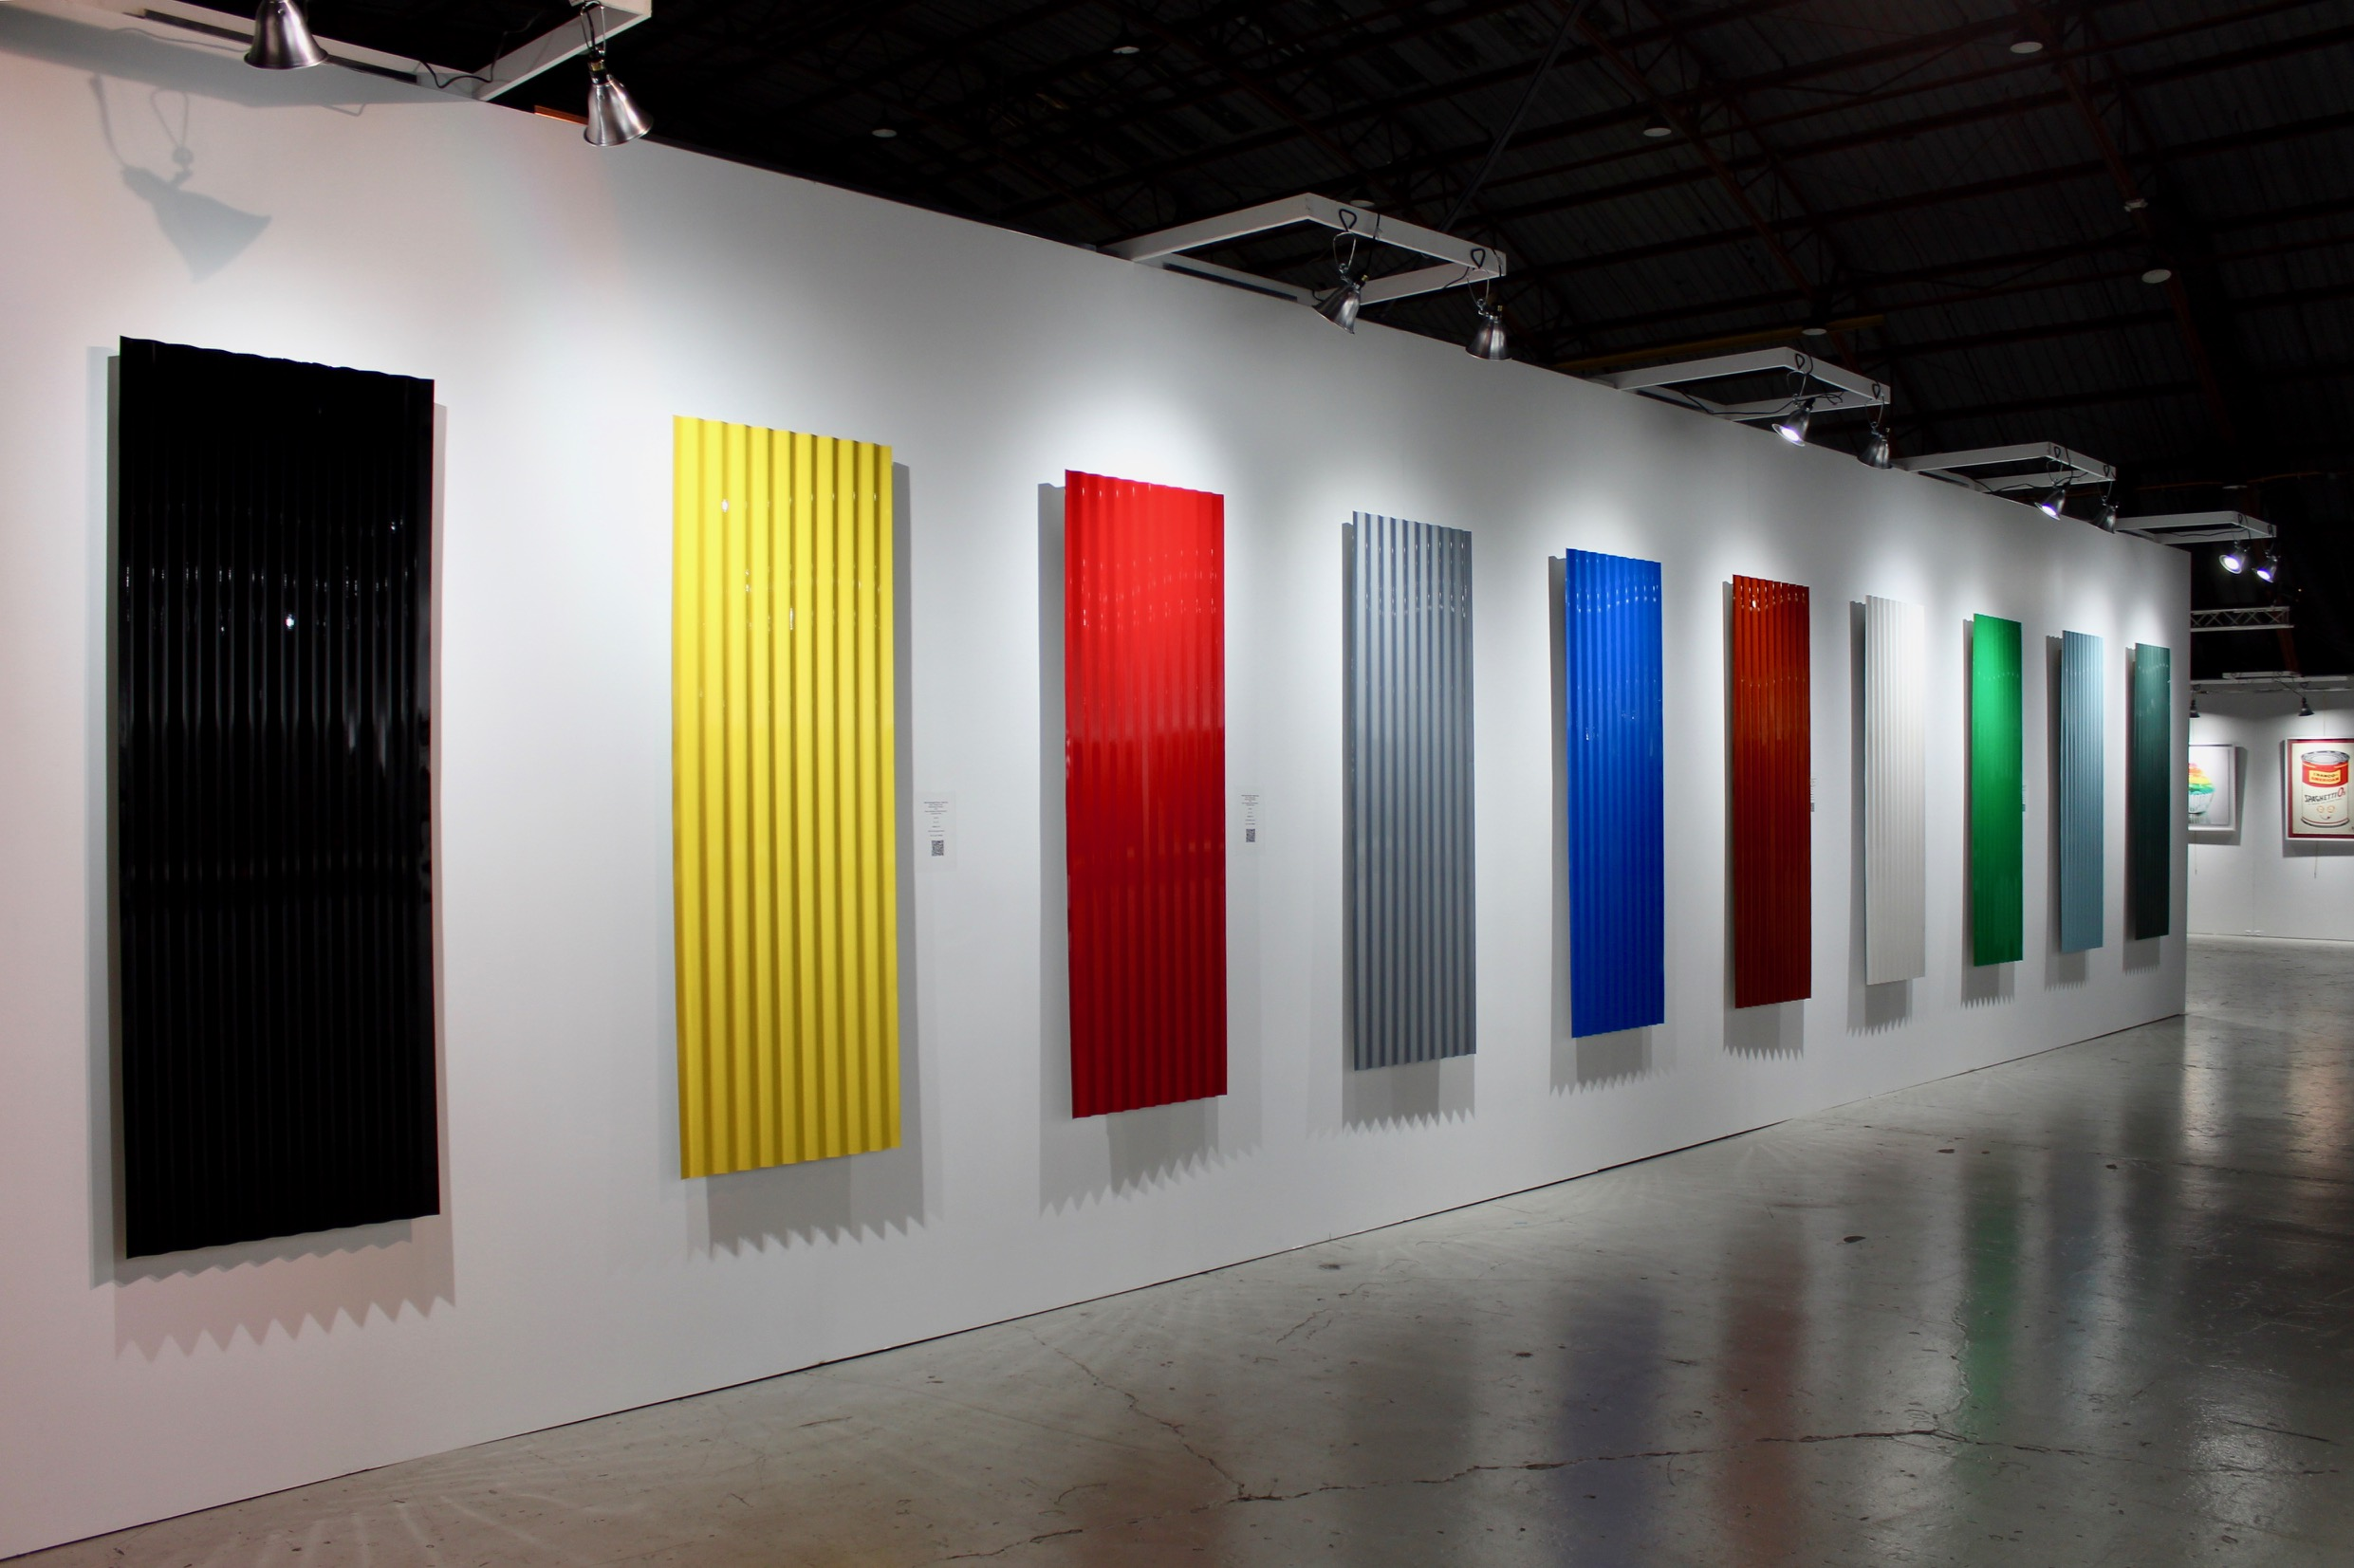 Rodrigo Cuala's car color exhibition